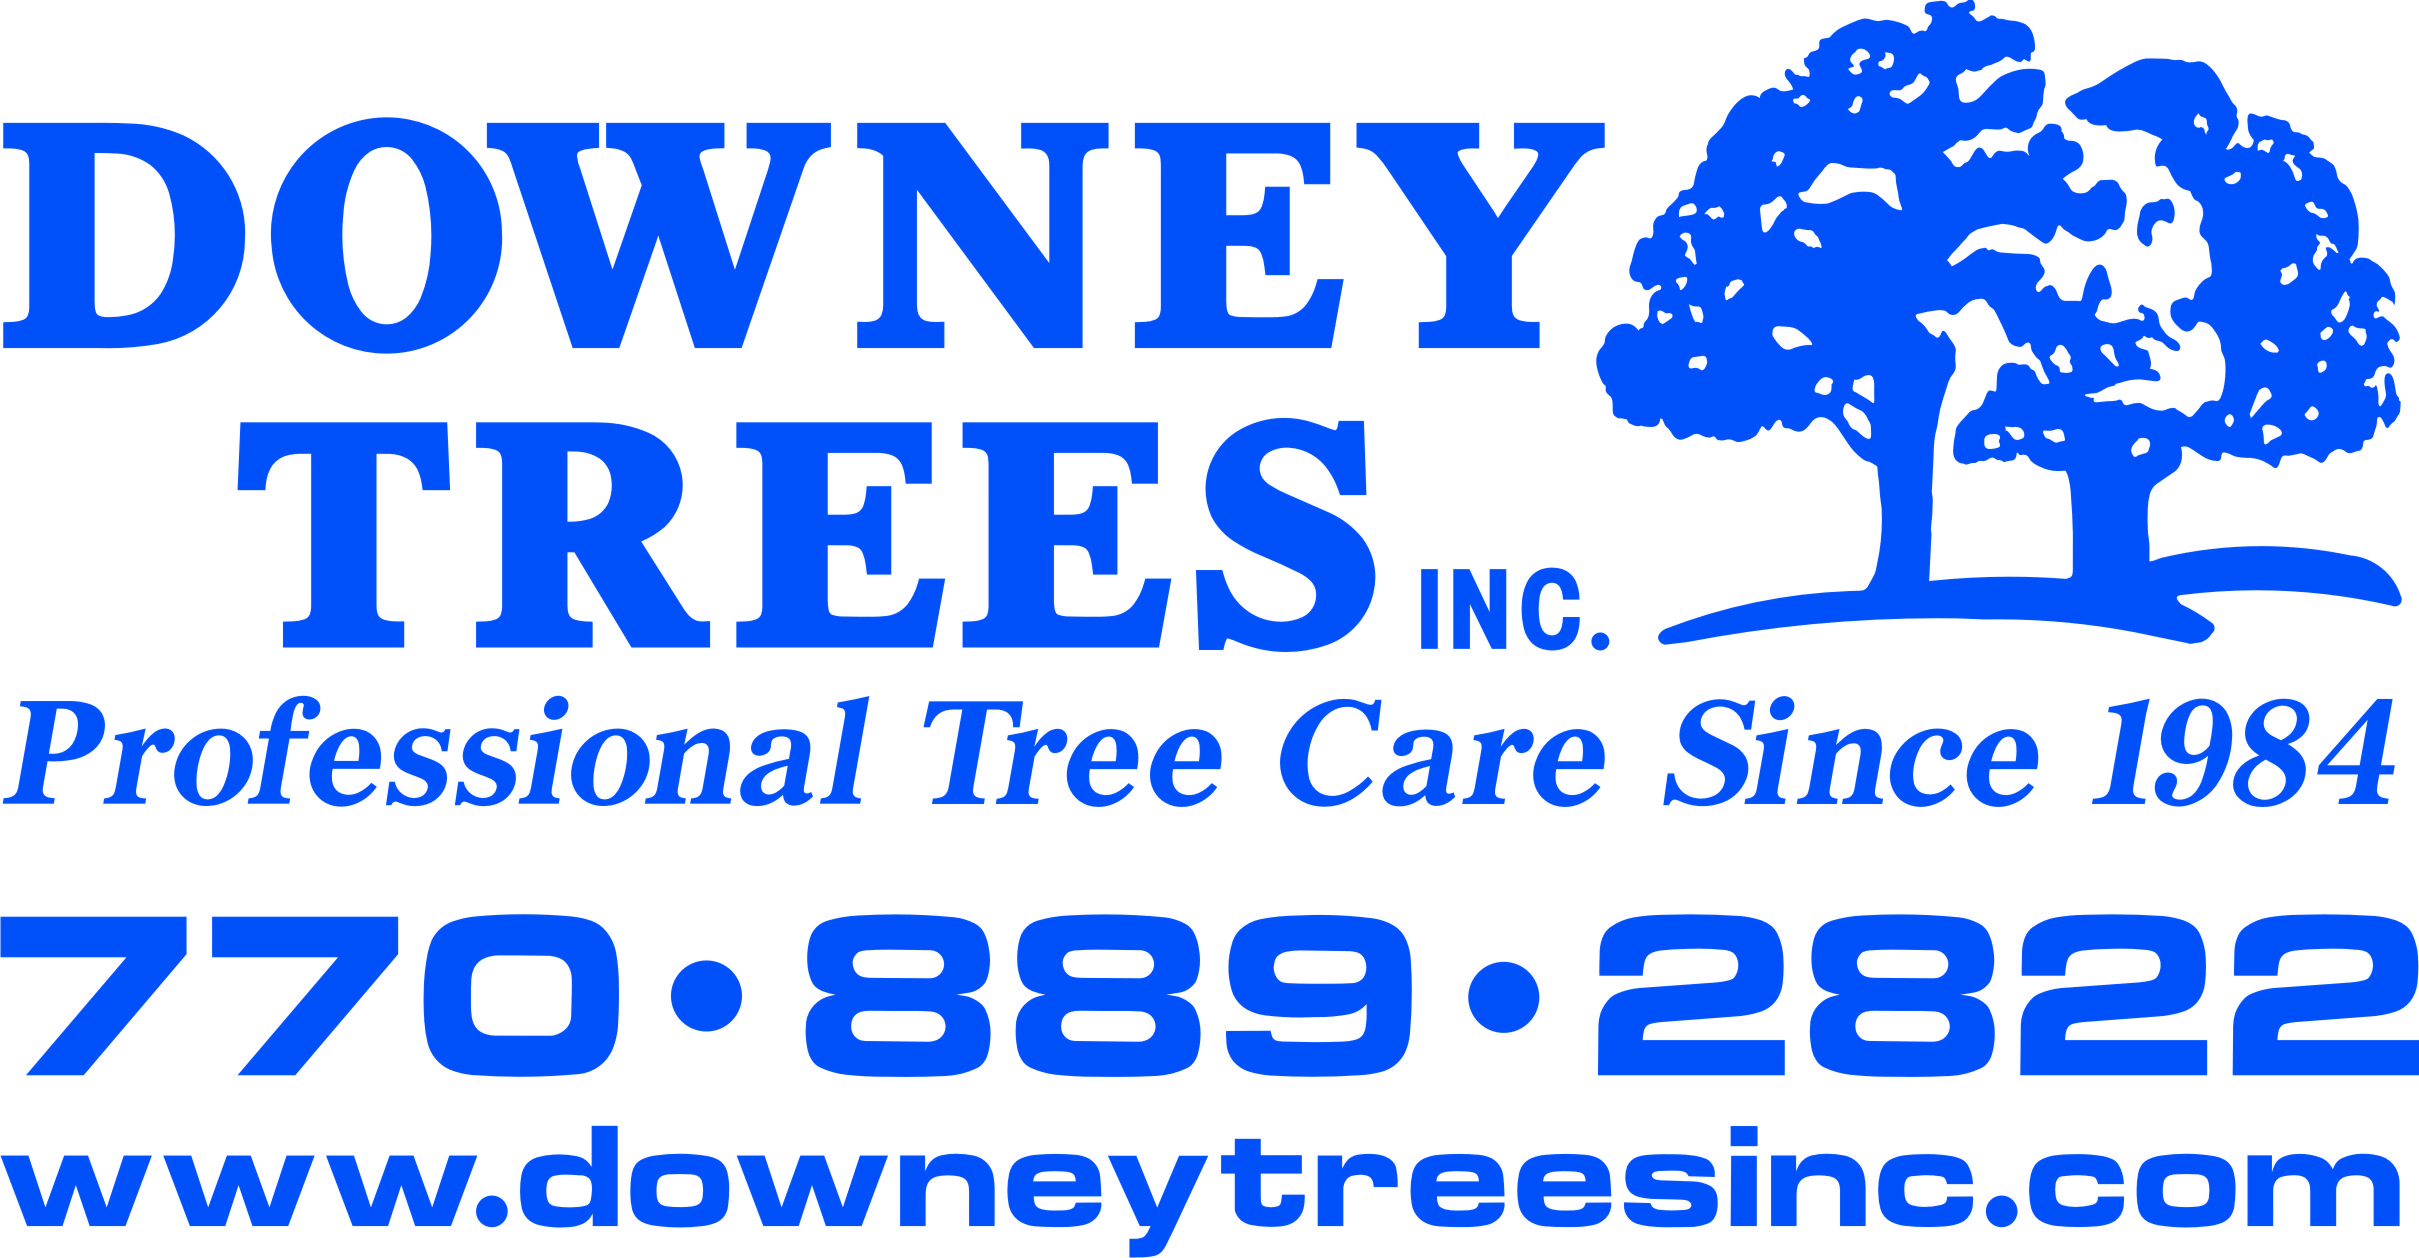 Downey Trees